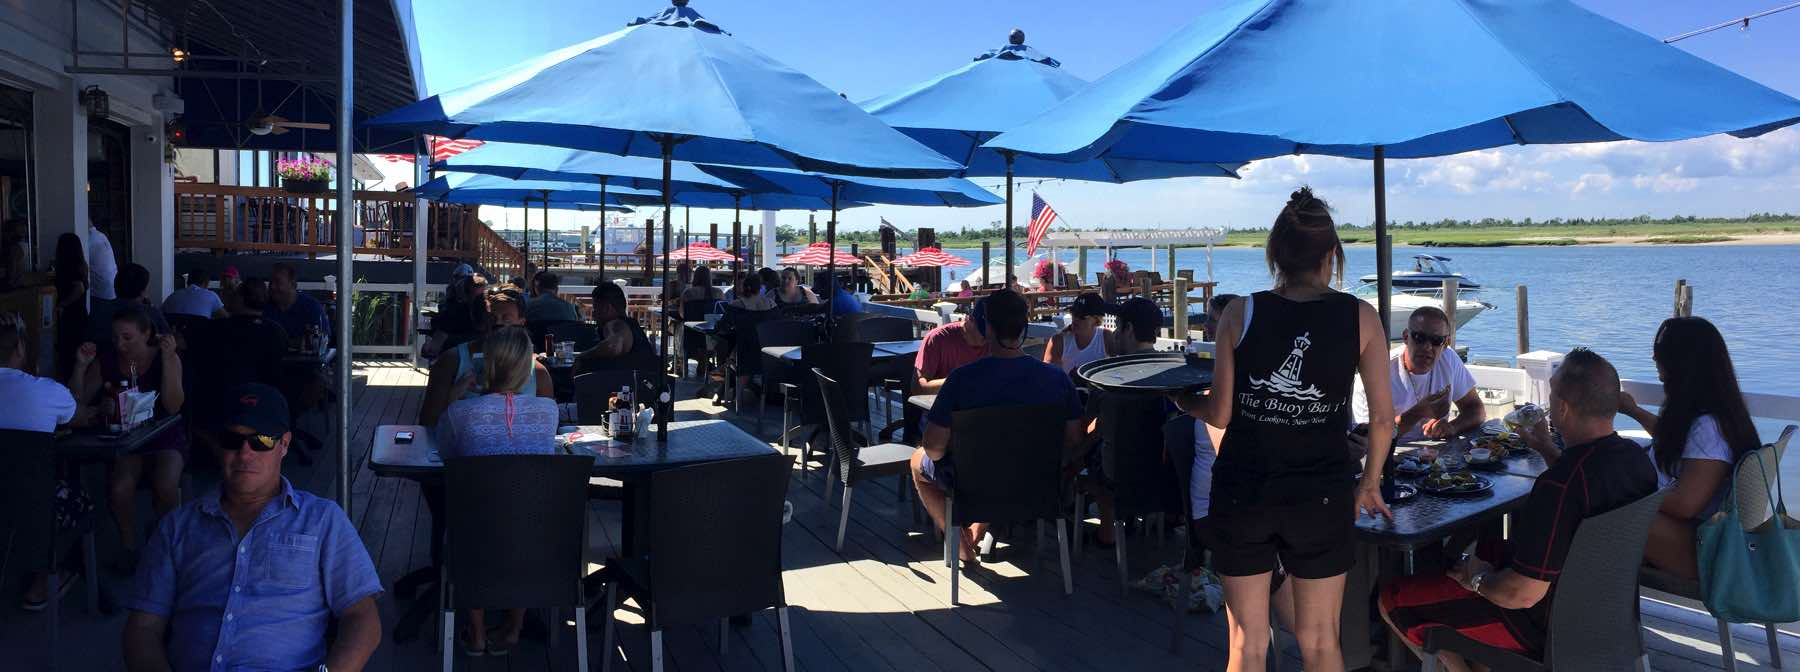 The Buoy Bar Waterfront Dining On The South Shore Of Long Island